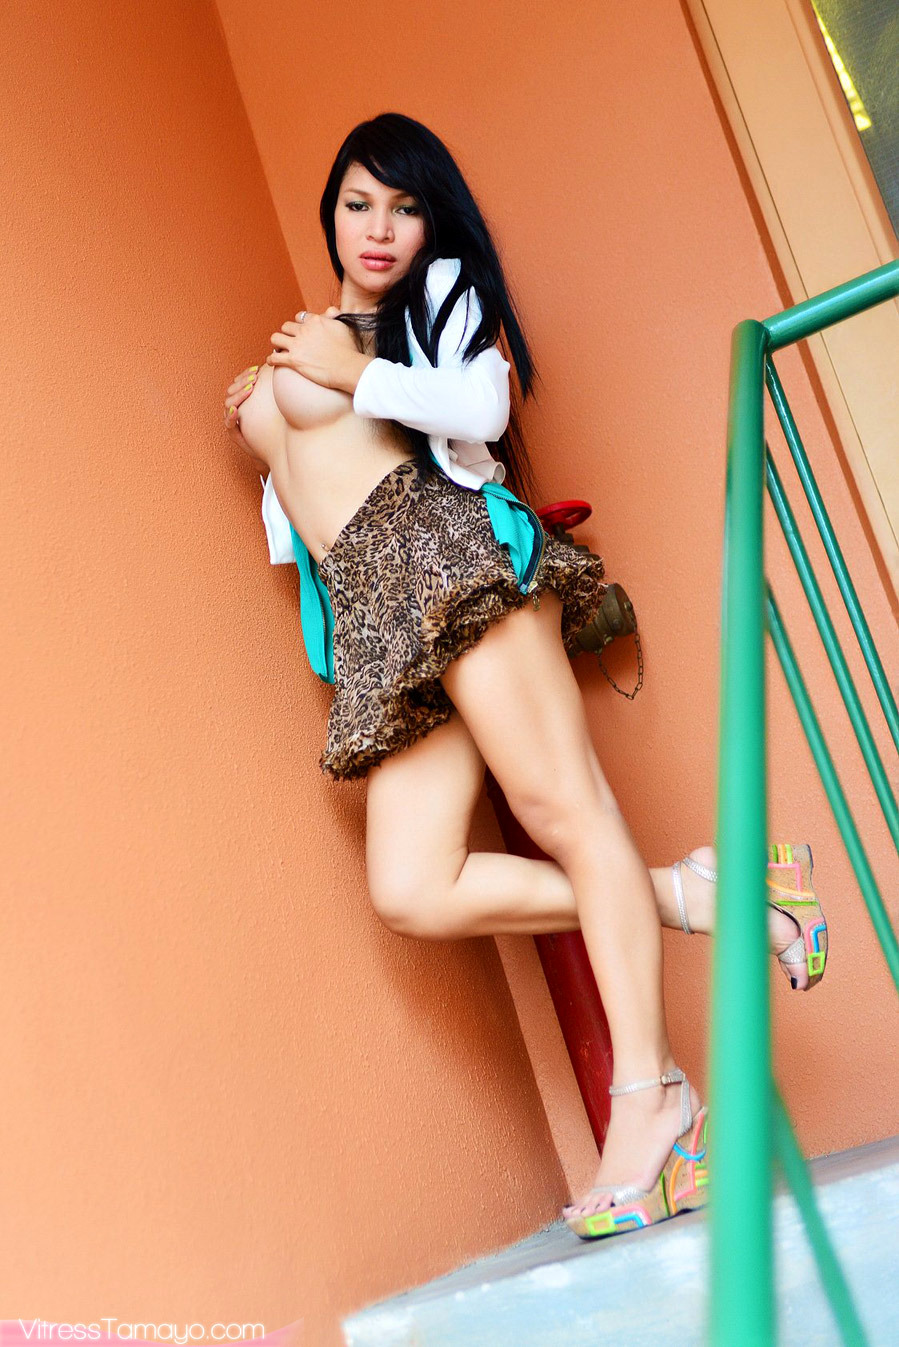 Whore With A Ccok Gives Us A Delicious Upskirt